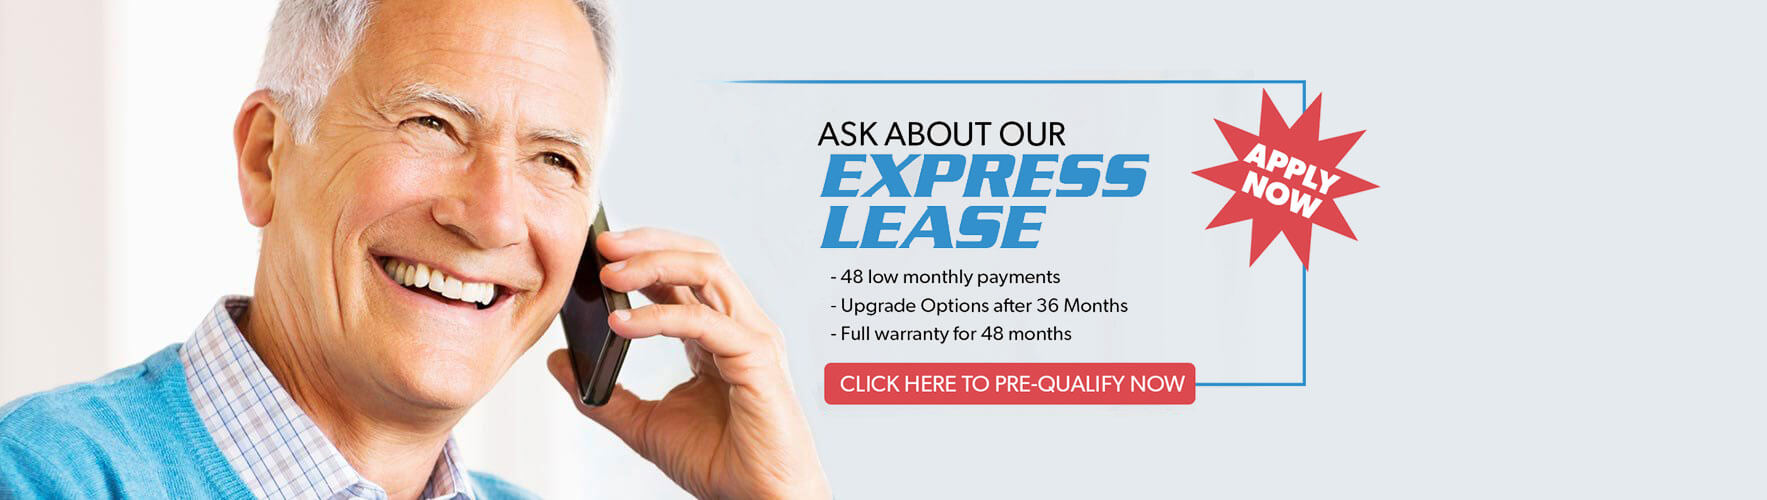 Hearing Aid Leasing Banner | Hearing Aid Express